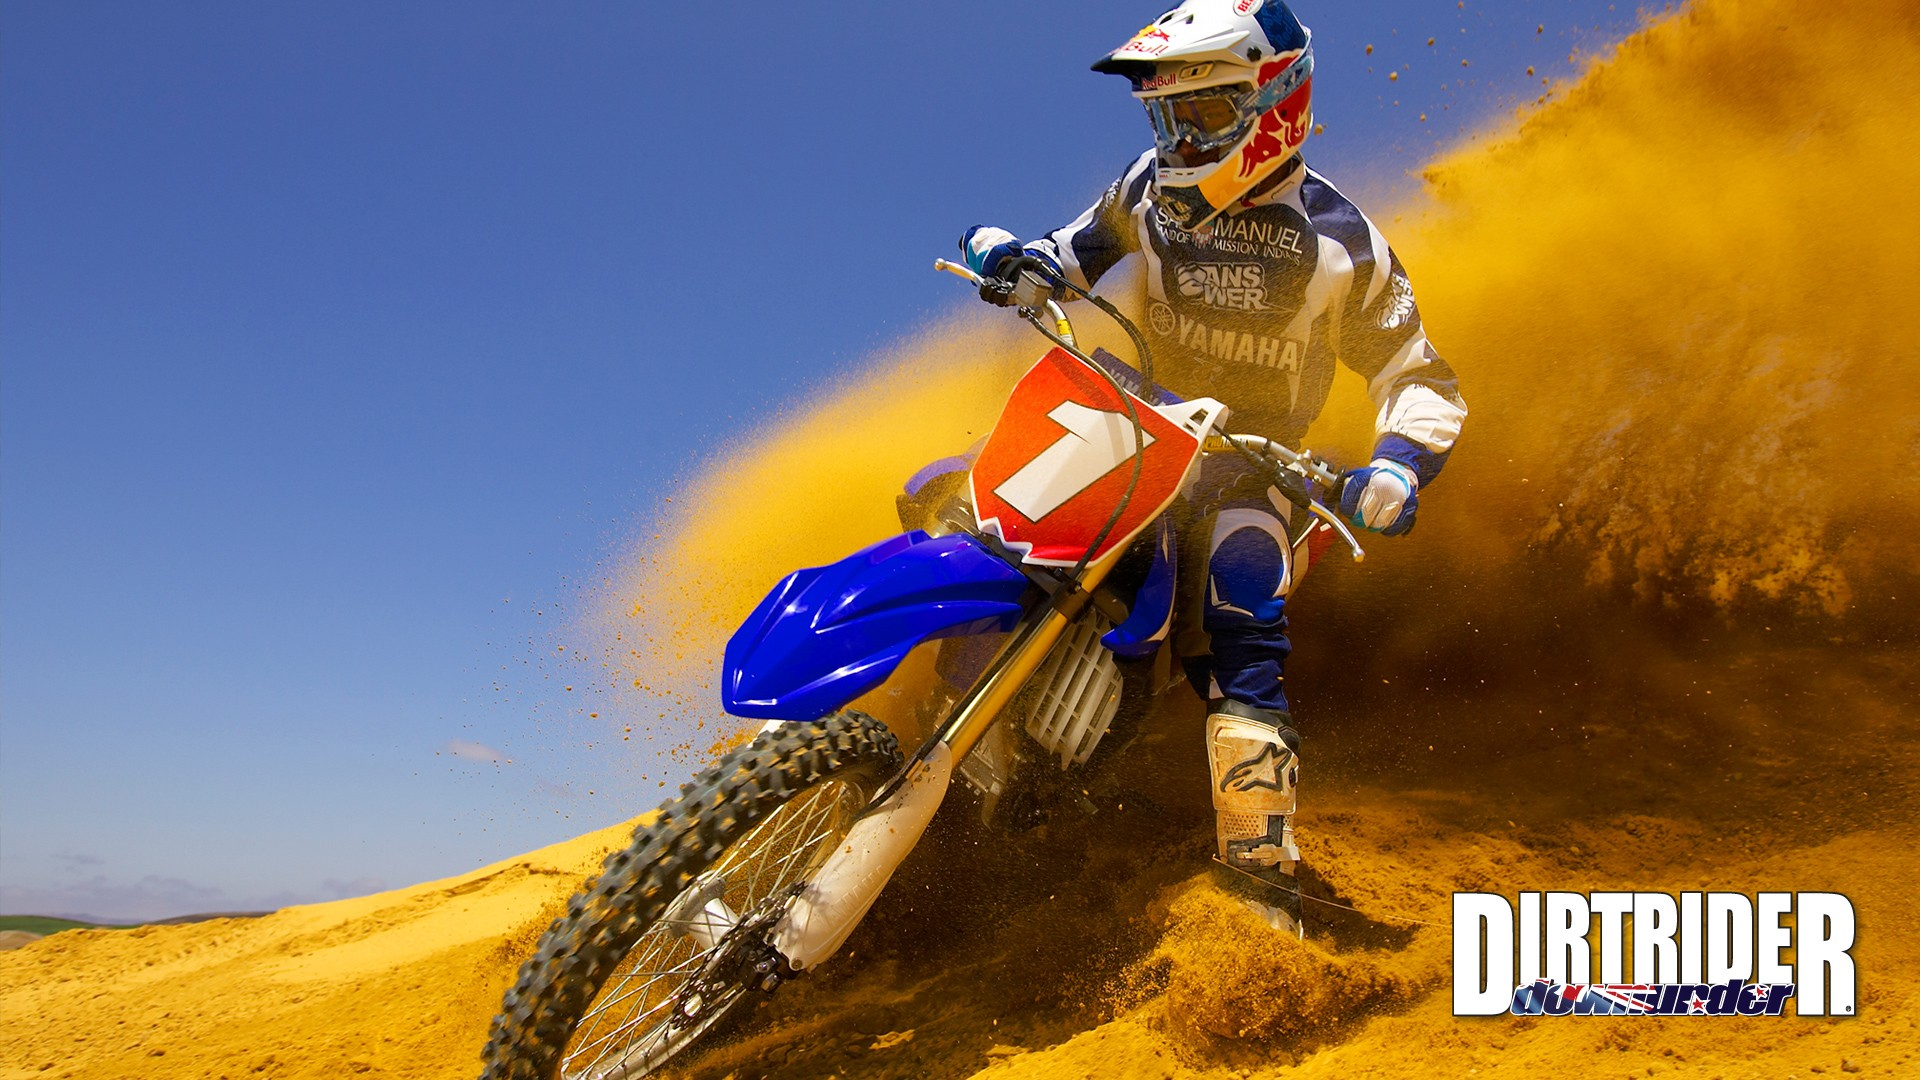 Motocross HD Wallpaper | Background Image | 1920x1080 | ID:304791 - Wallpaper Abyss